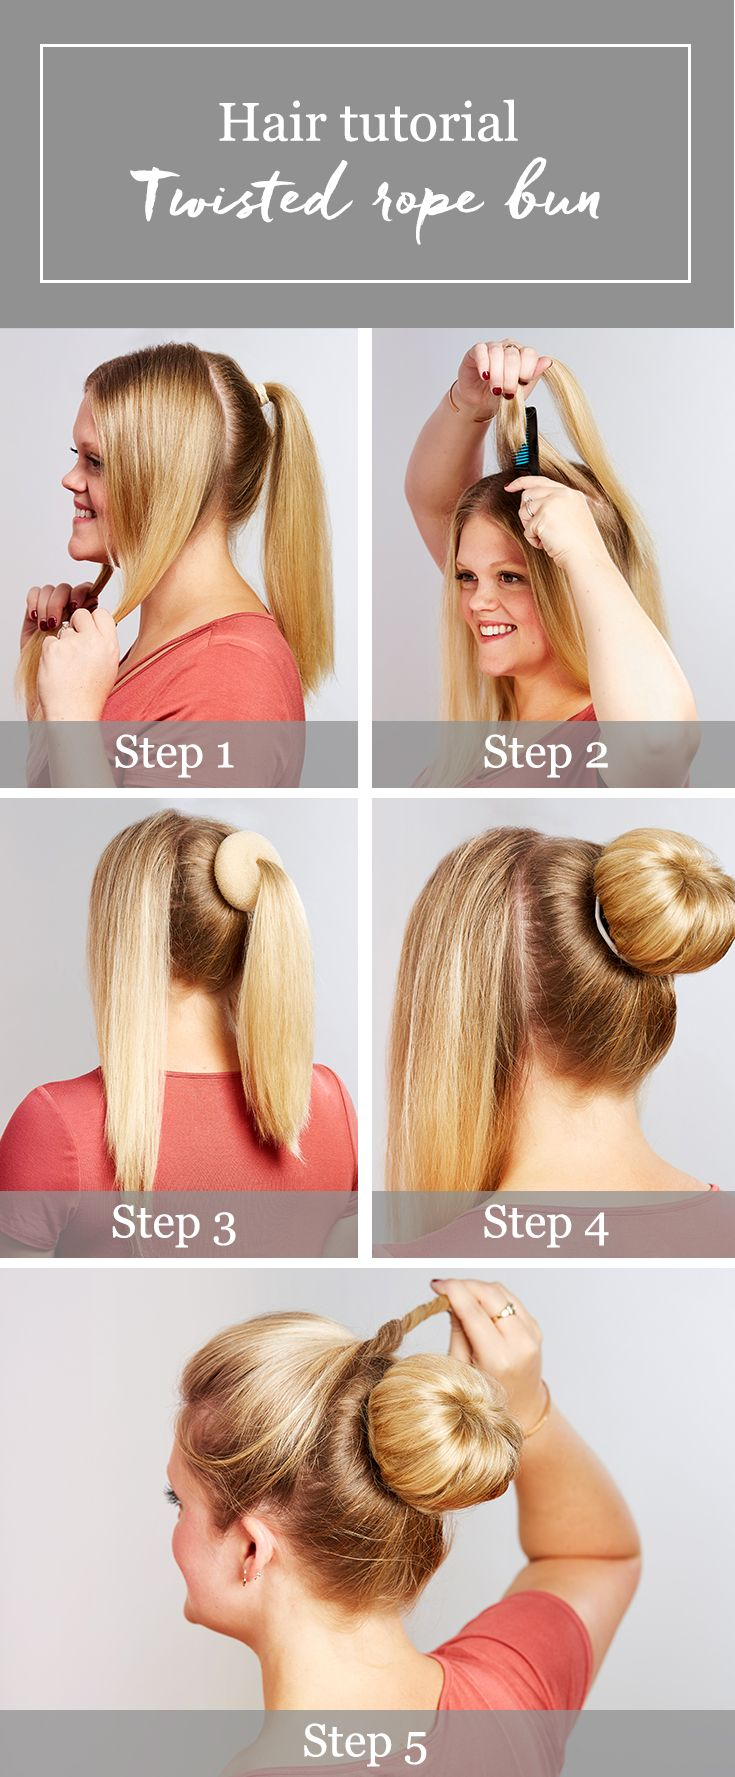 Step By Step Instructions For A Twisted Rope Bun Hairstyle This Easy Updo Hair Tutorial Walks You Through 5 Si Hair Styles Easy Hairstyles Easy Bun Hairstyles